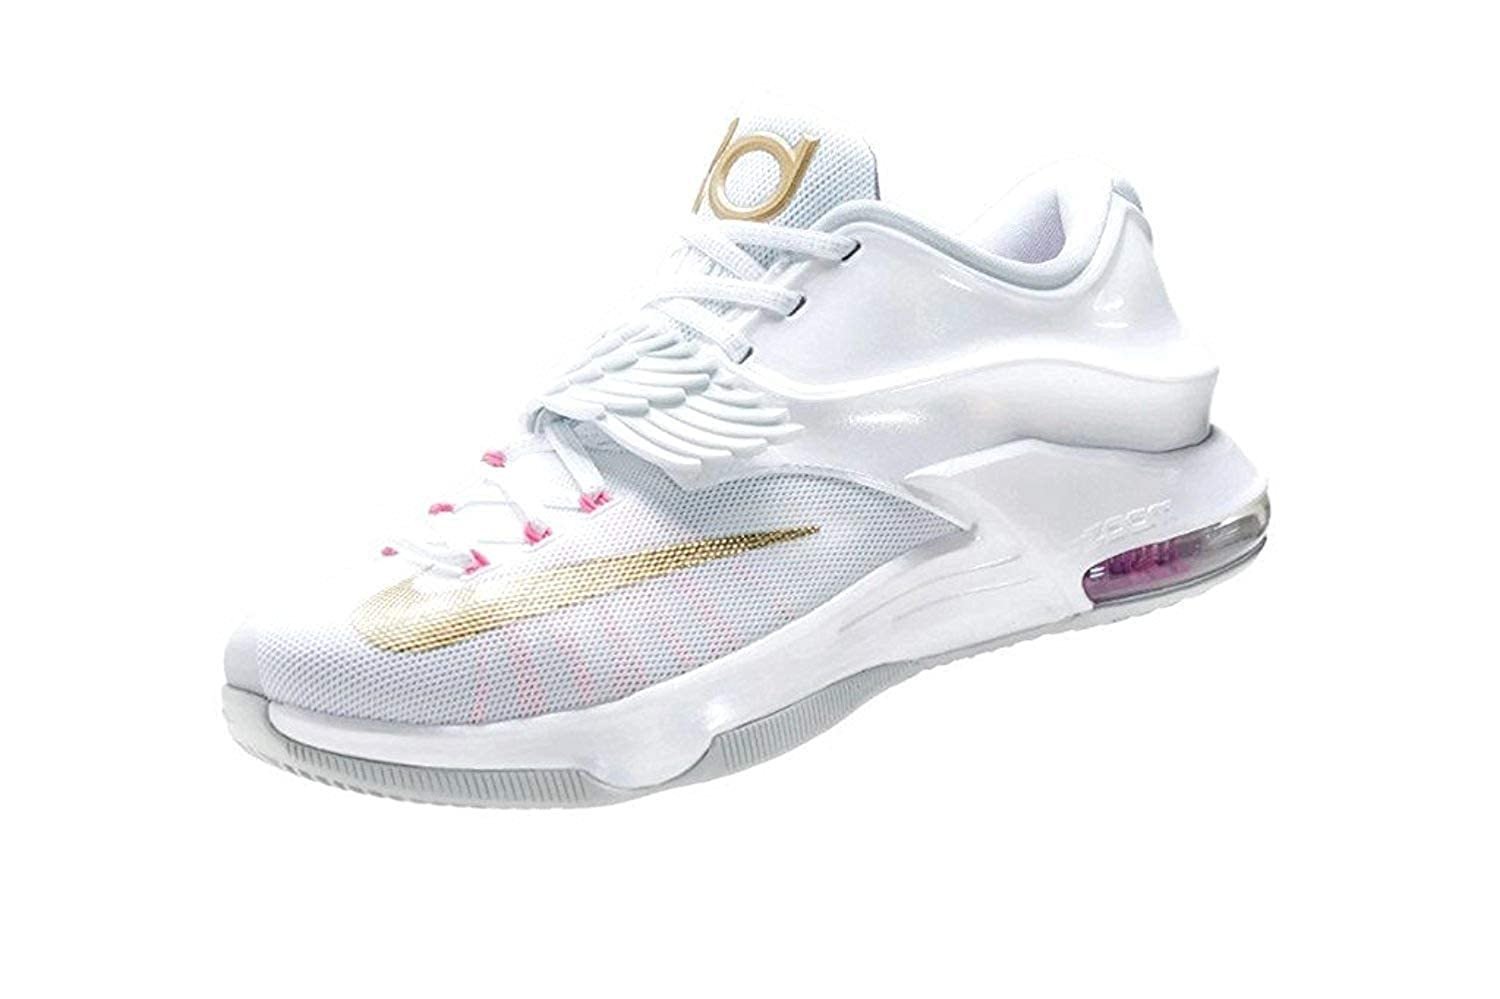 separation shoes ceb71 beb87 Nike Mens KD VII 7 Premium Aunt Pearl Size 11, WhitePink PowPure  PlatinumMetallic Gold, 10 D(M) UK45 D(M) EU Amazon.co.uk Shoes  Bags